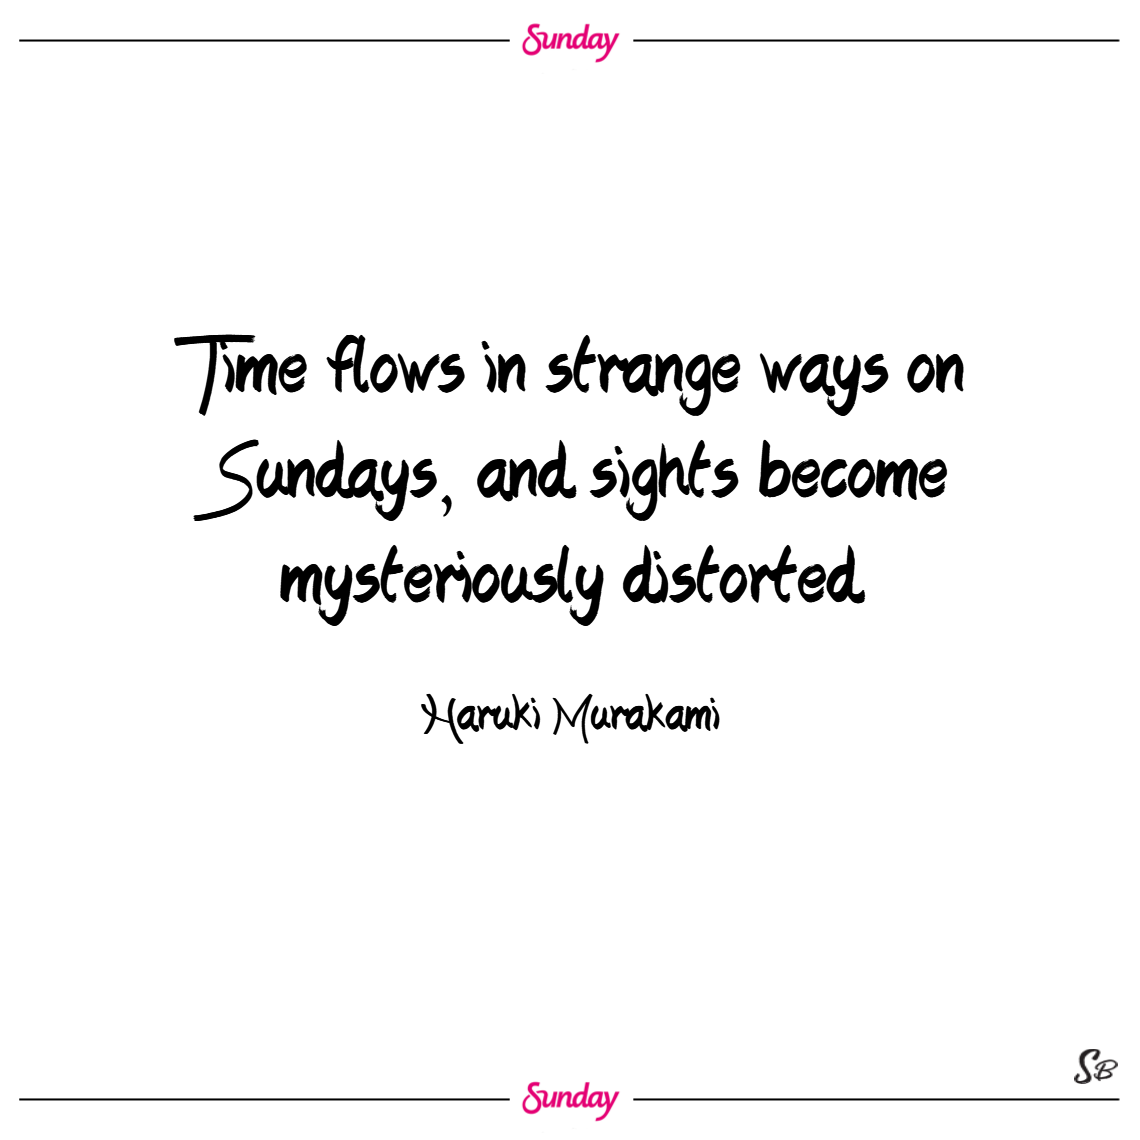 Time flows in strange ways on sundays, and sights become mysteriously distorted. – haruki murakami